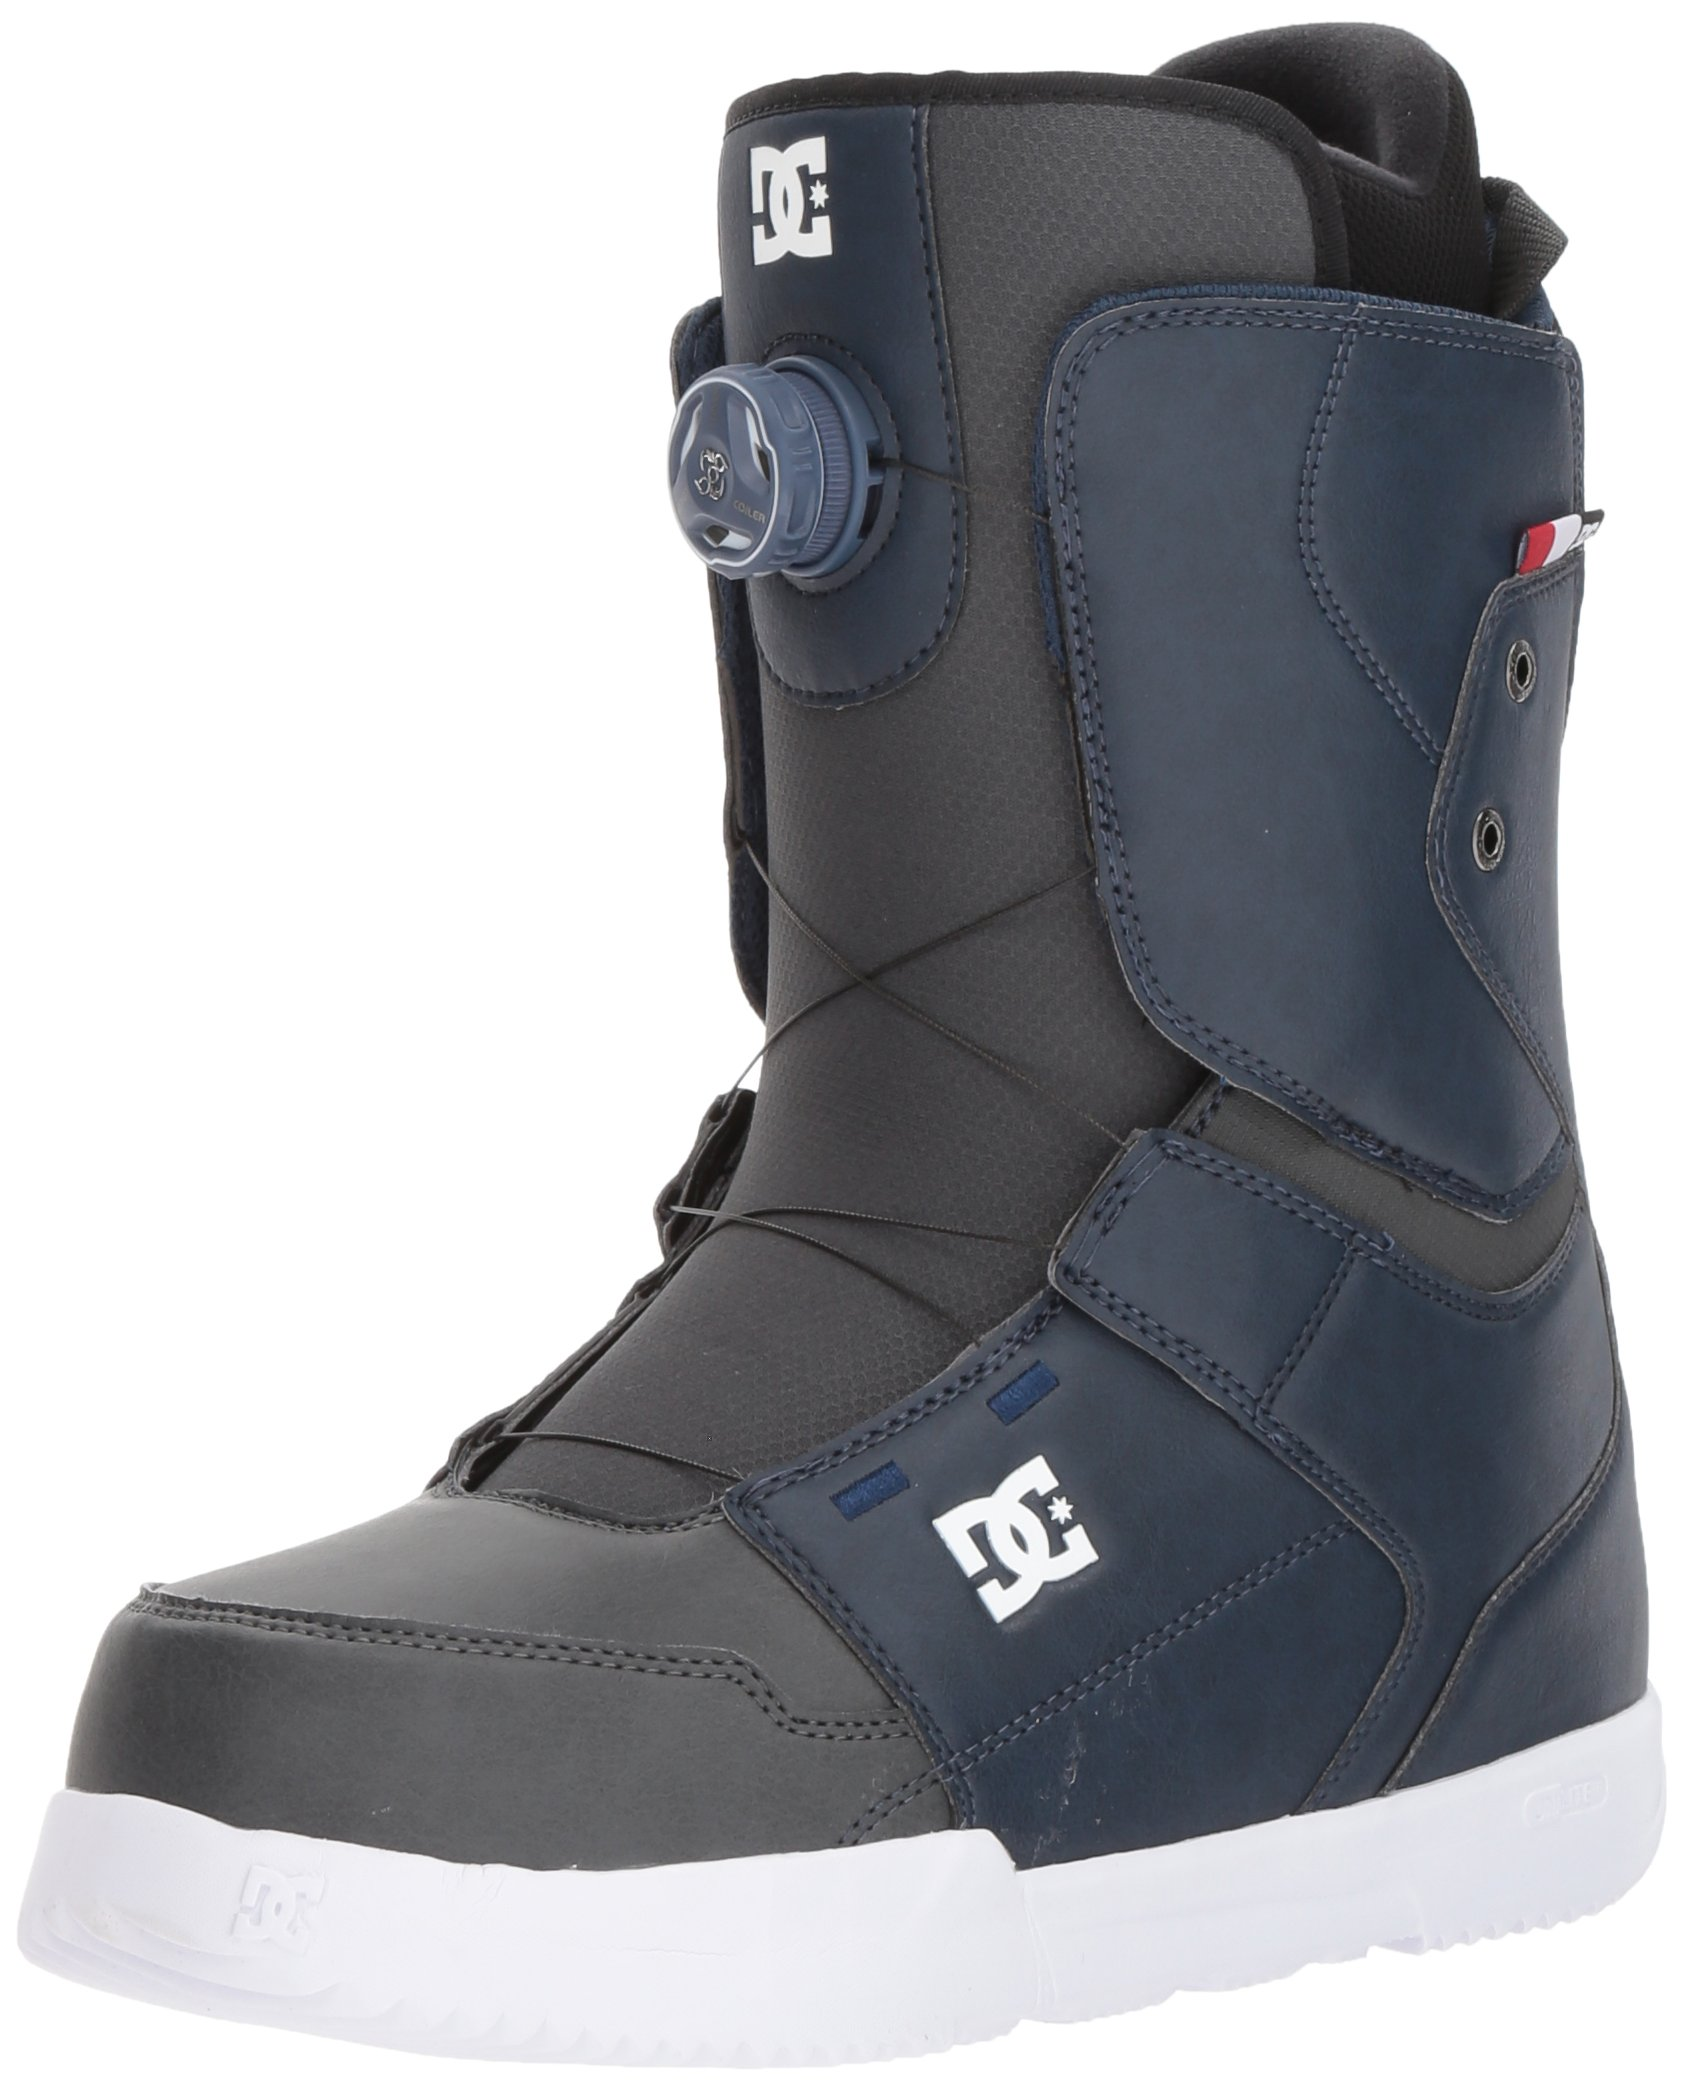 DC Men's Scout Boa Snowboard Boots, Insignia Blue, 7.5 by DC (Image #1)